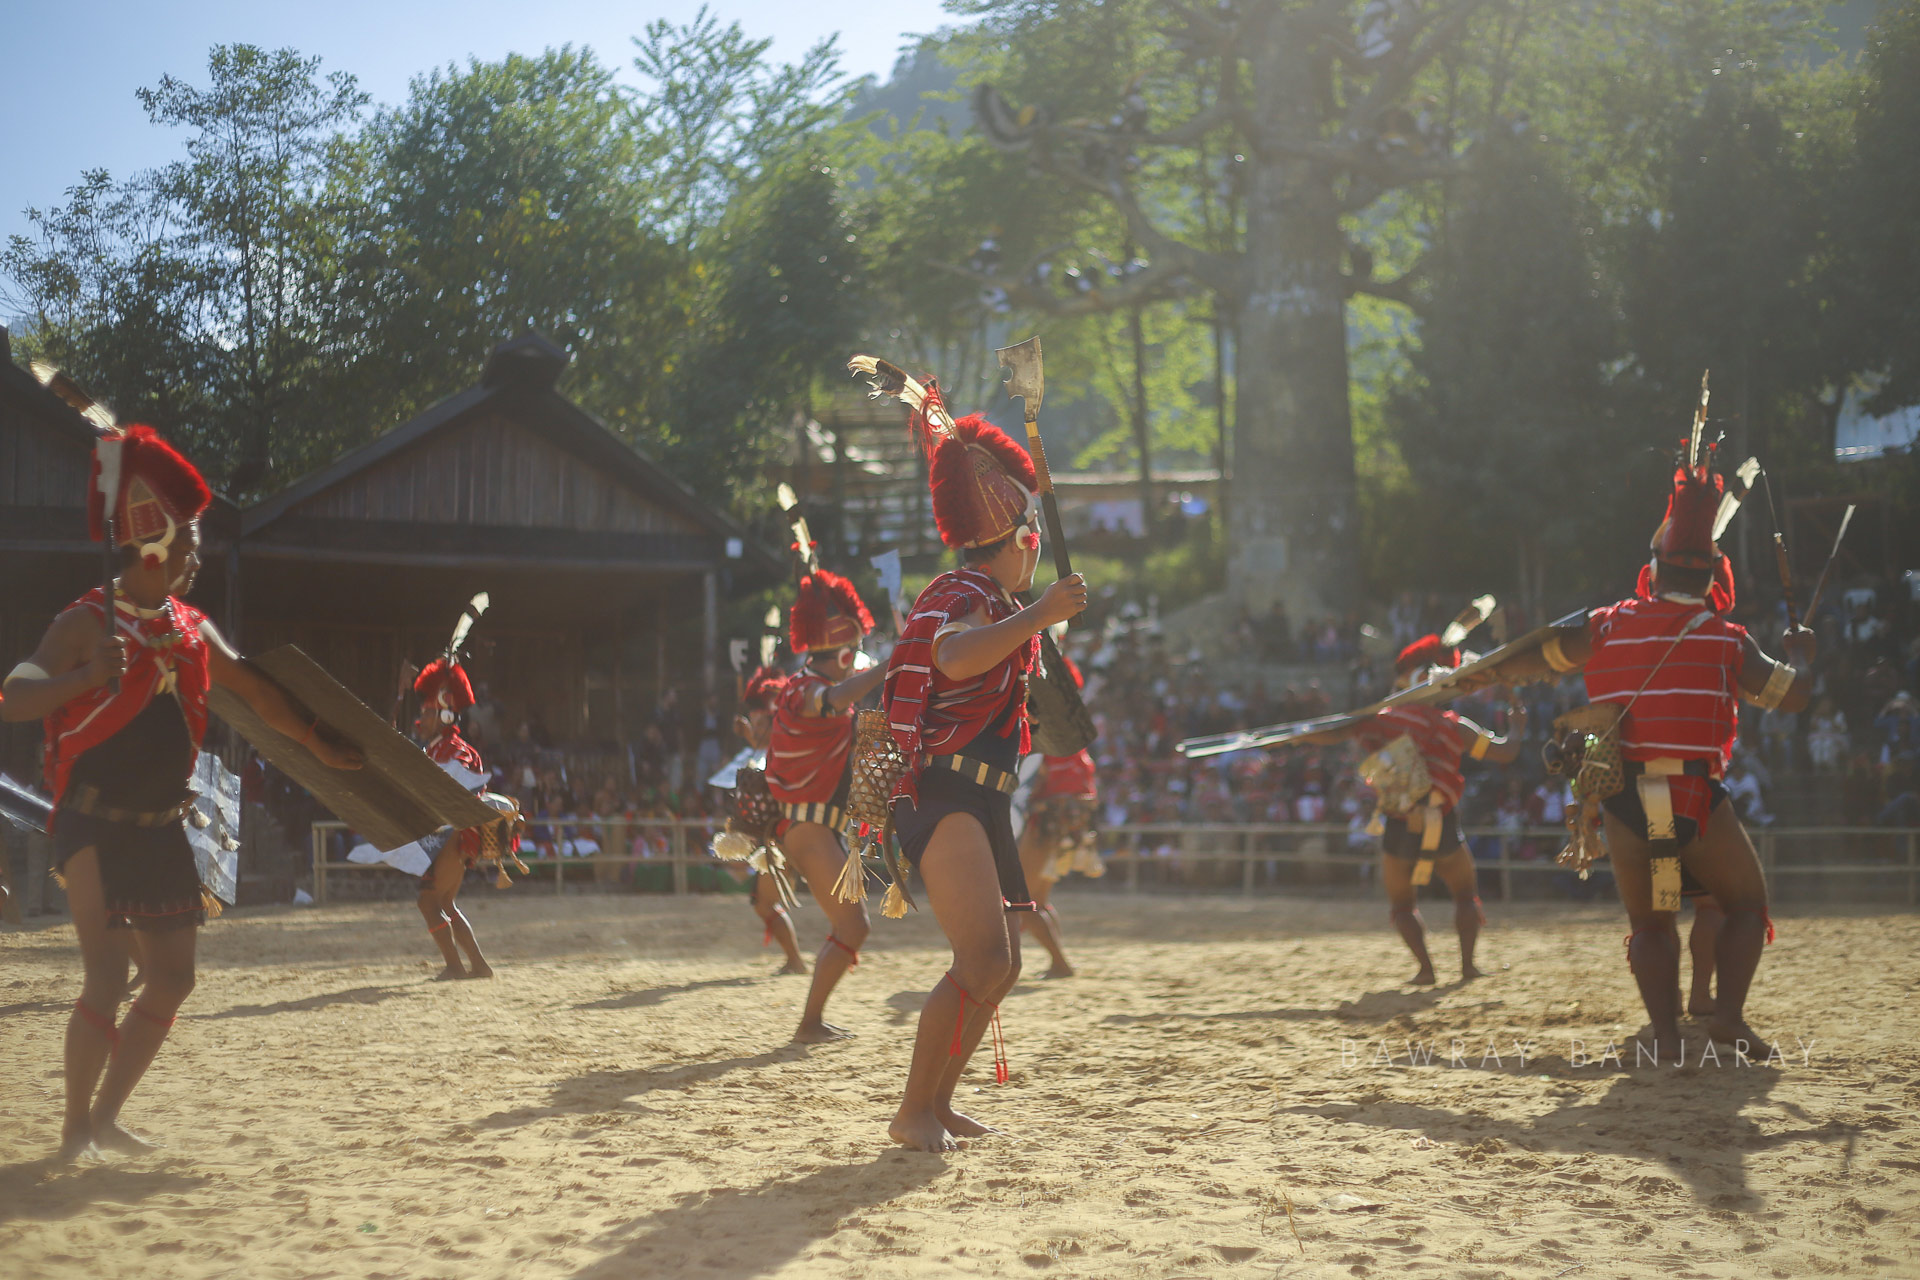 The hornbill festival is one of the most popular tourist attractions of Nagaland owing to the performances like these